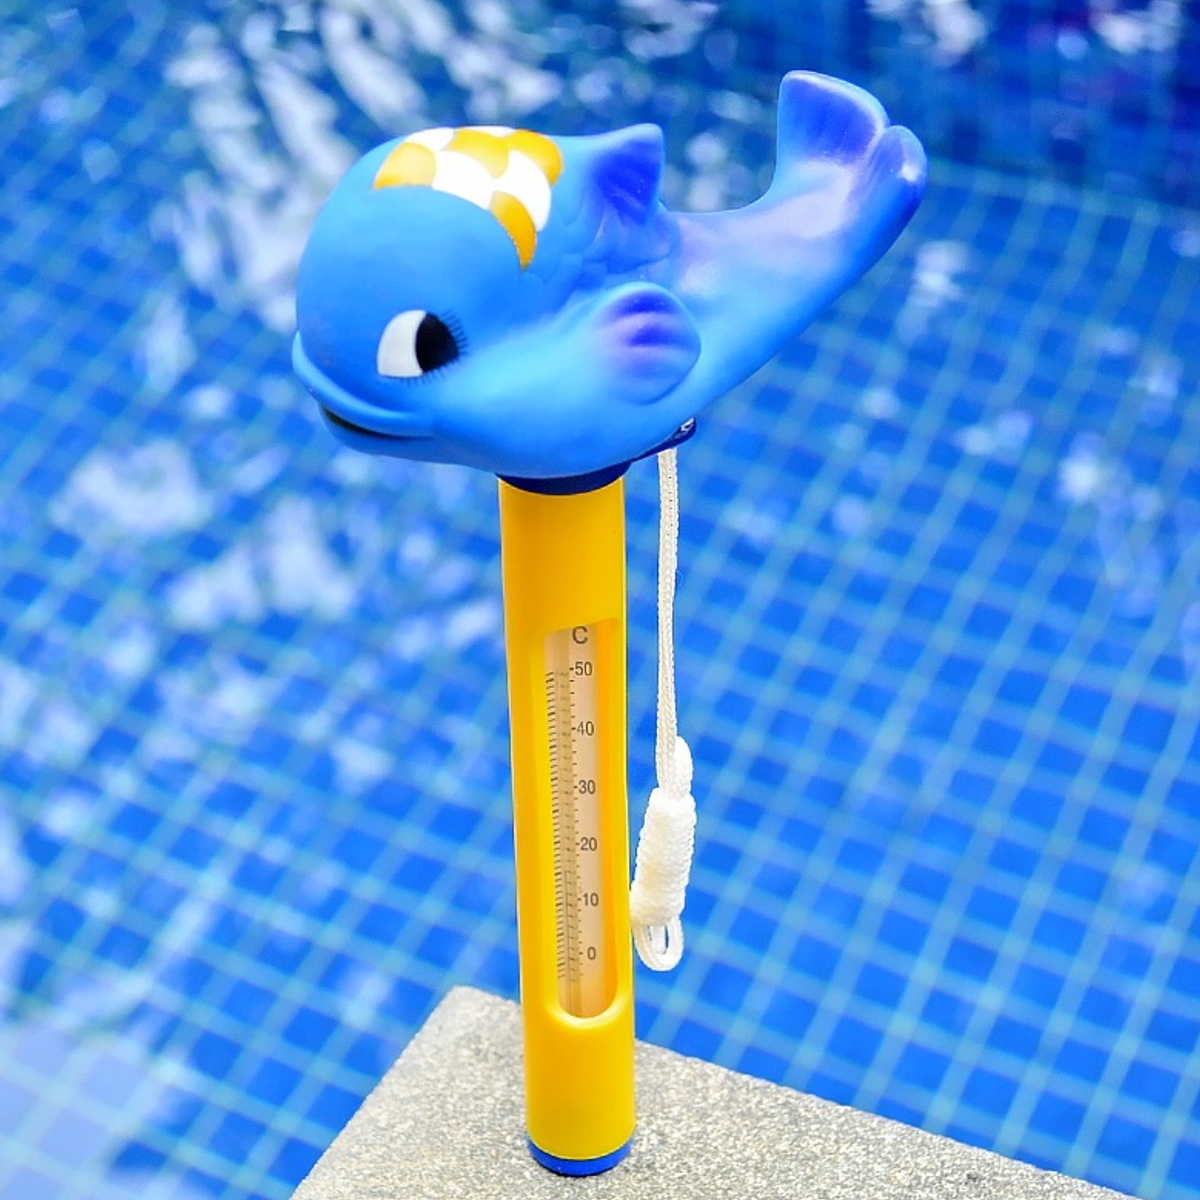 Carton Animal Baby Bath Swimming Pool Spa Floating Tub Thermometer Water Temperature Meter